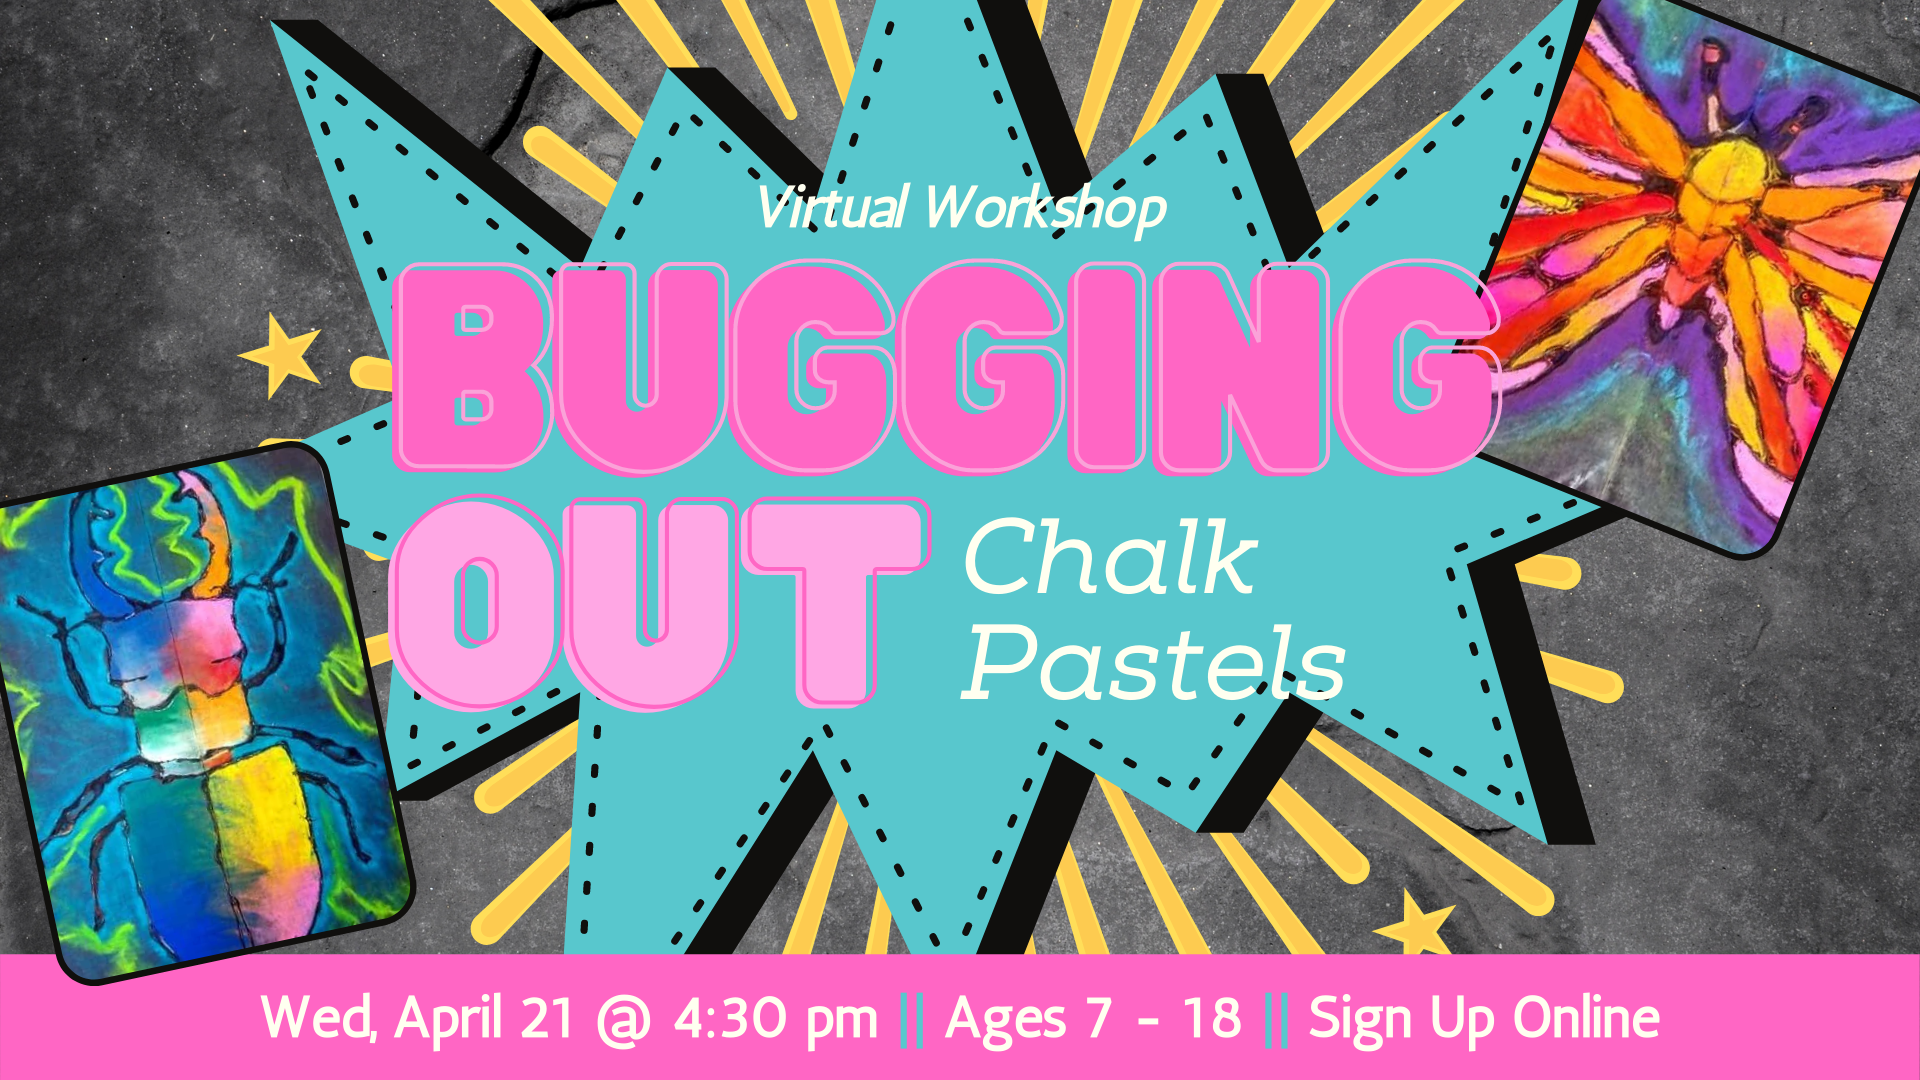 Bugging Out Chalk Pastels